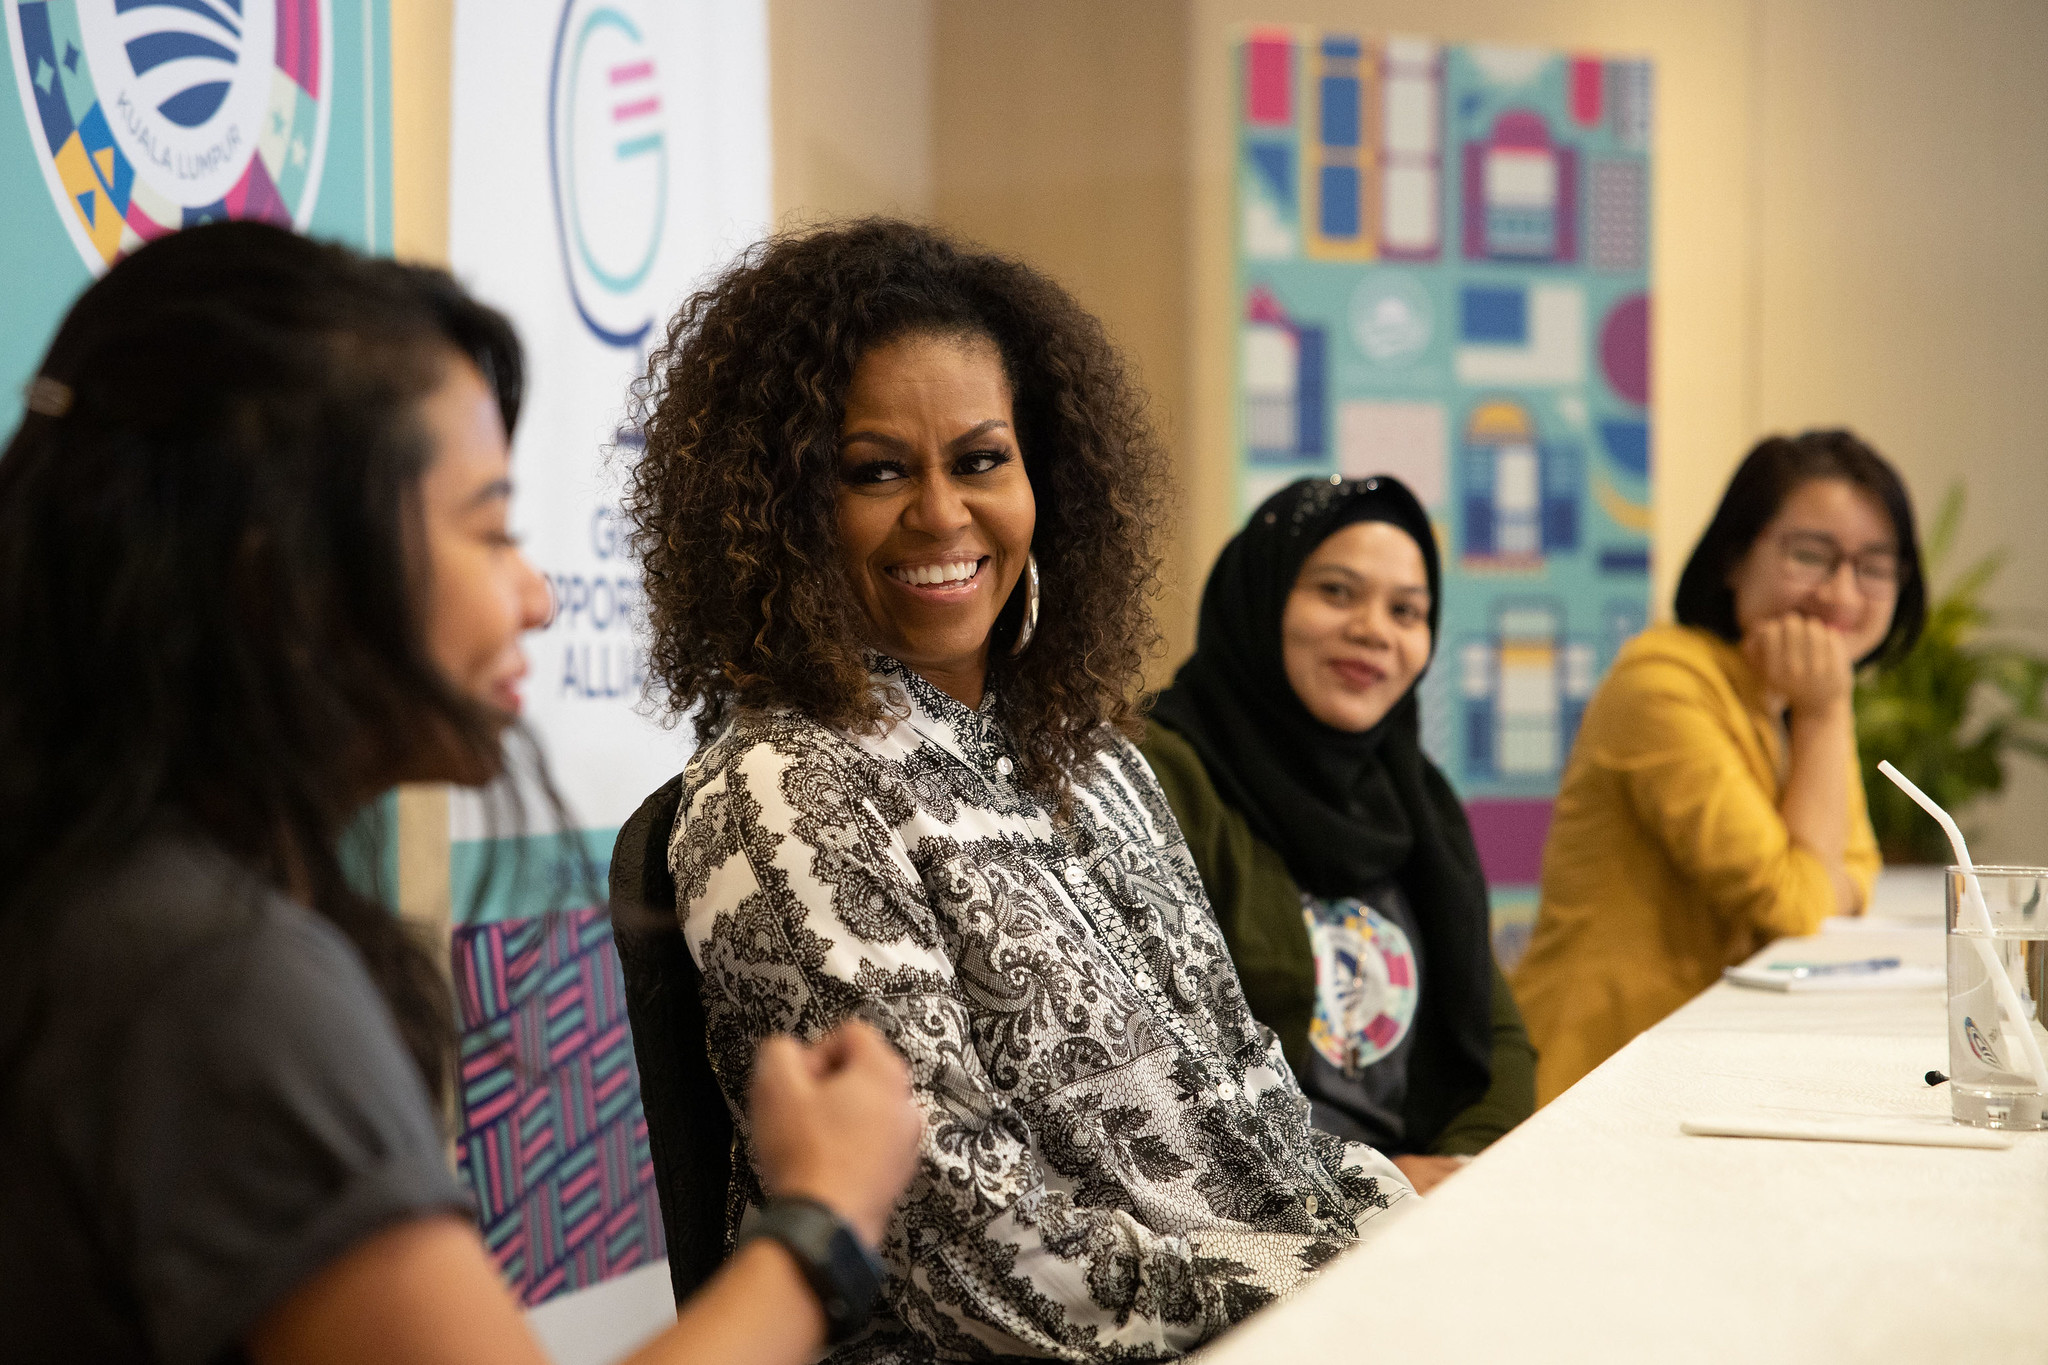 5 Takeaways From the 'Obama Foundation Leaders: Asia-Pacific Convening 2019'